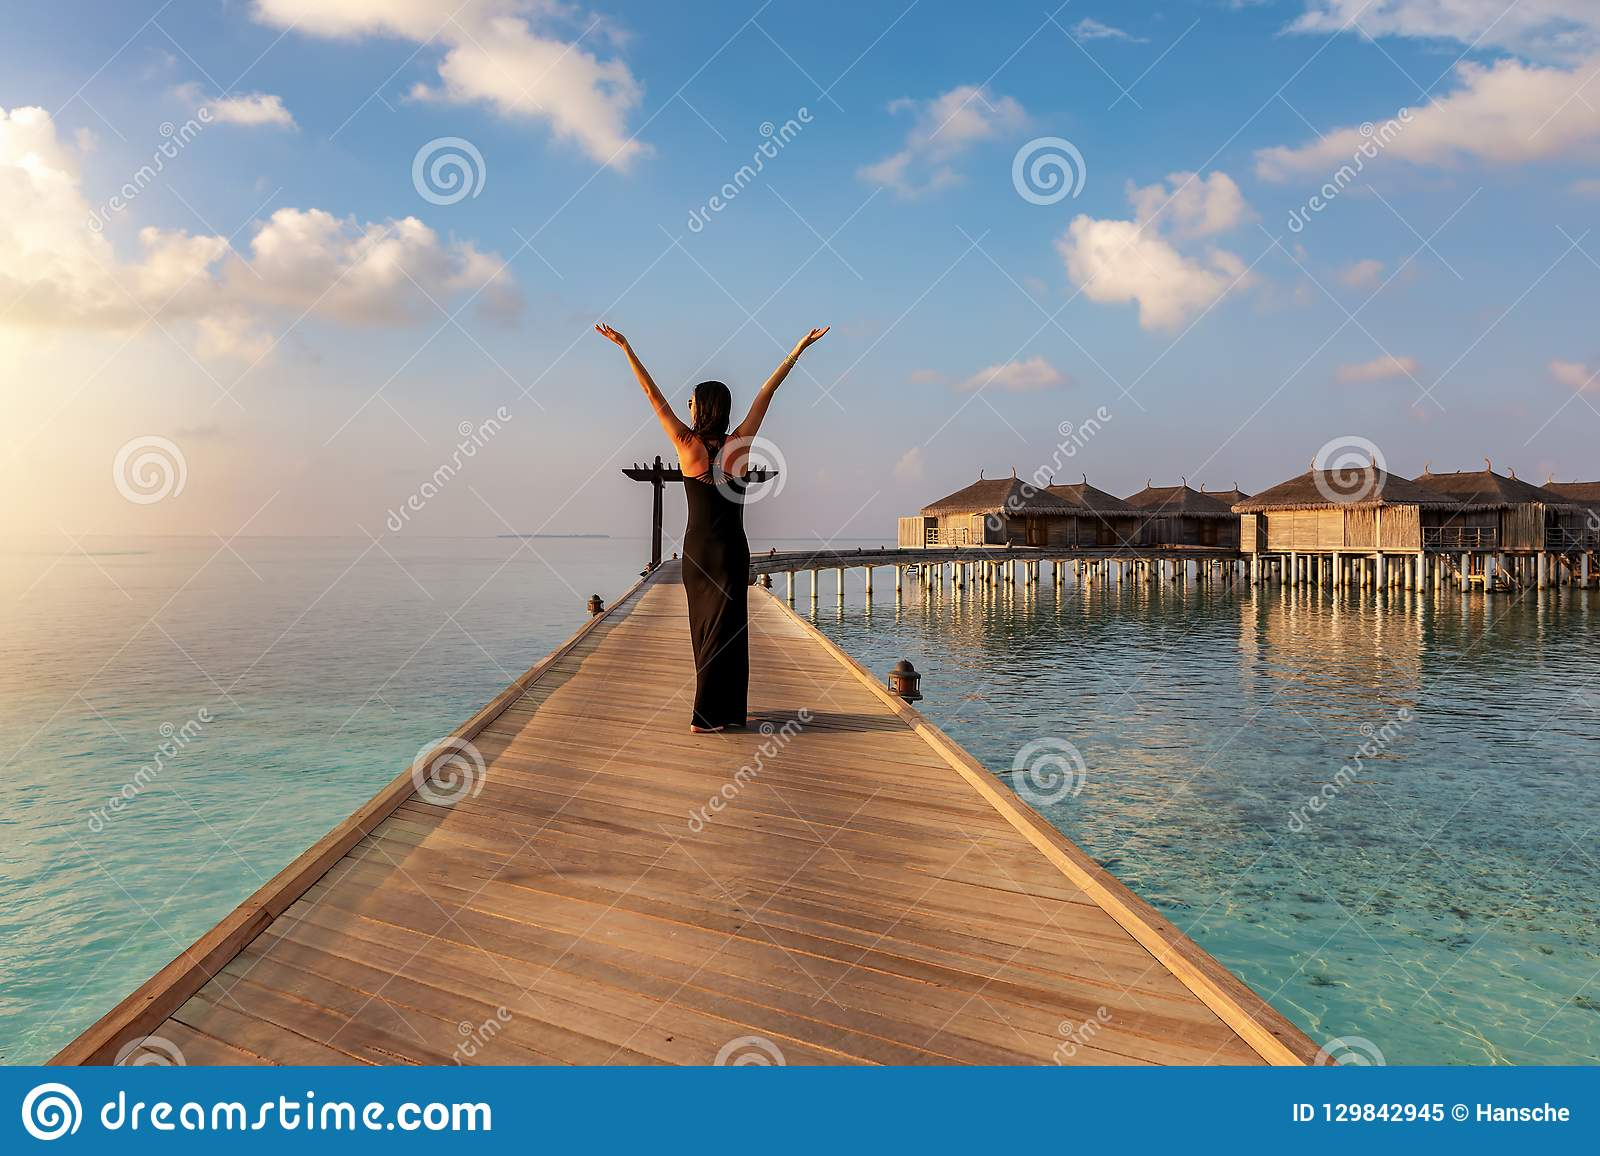 Woman walks on a wooden jetty in the Maldives